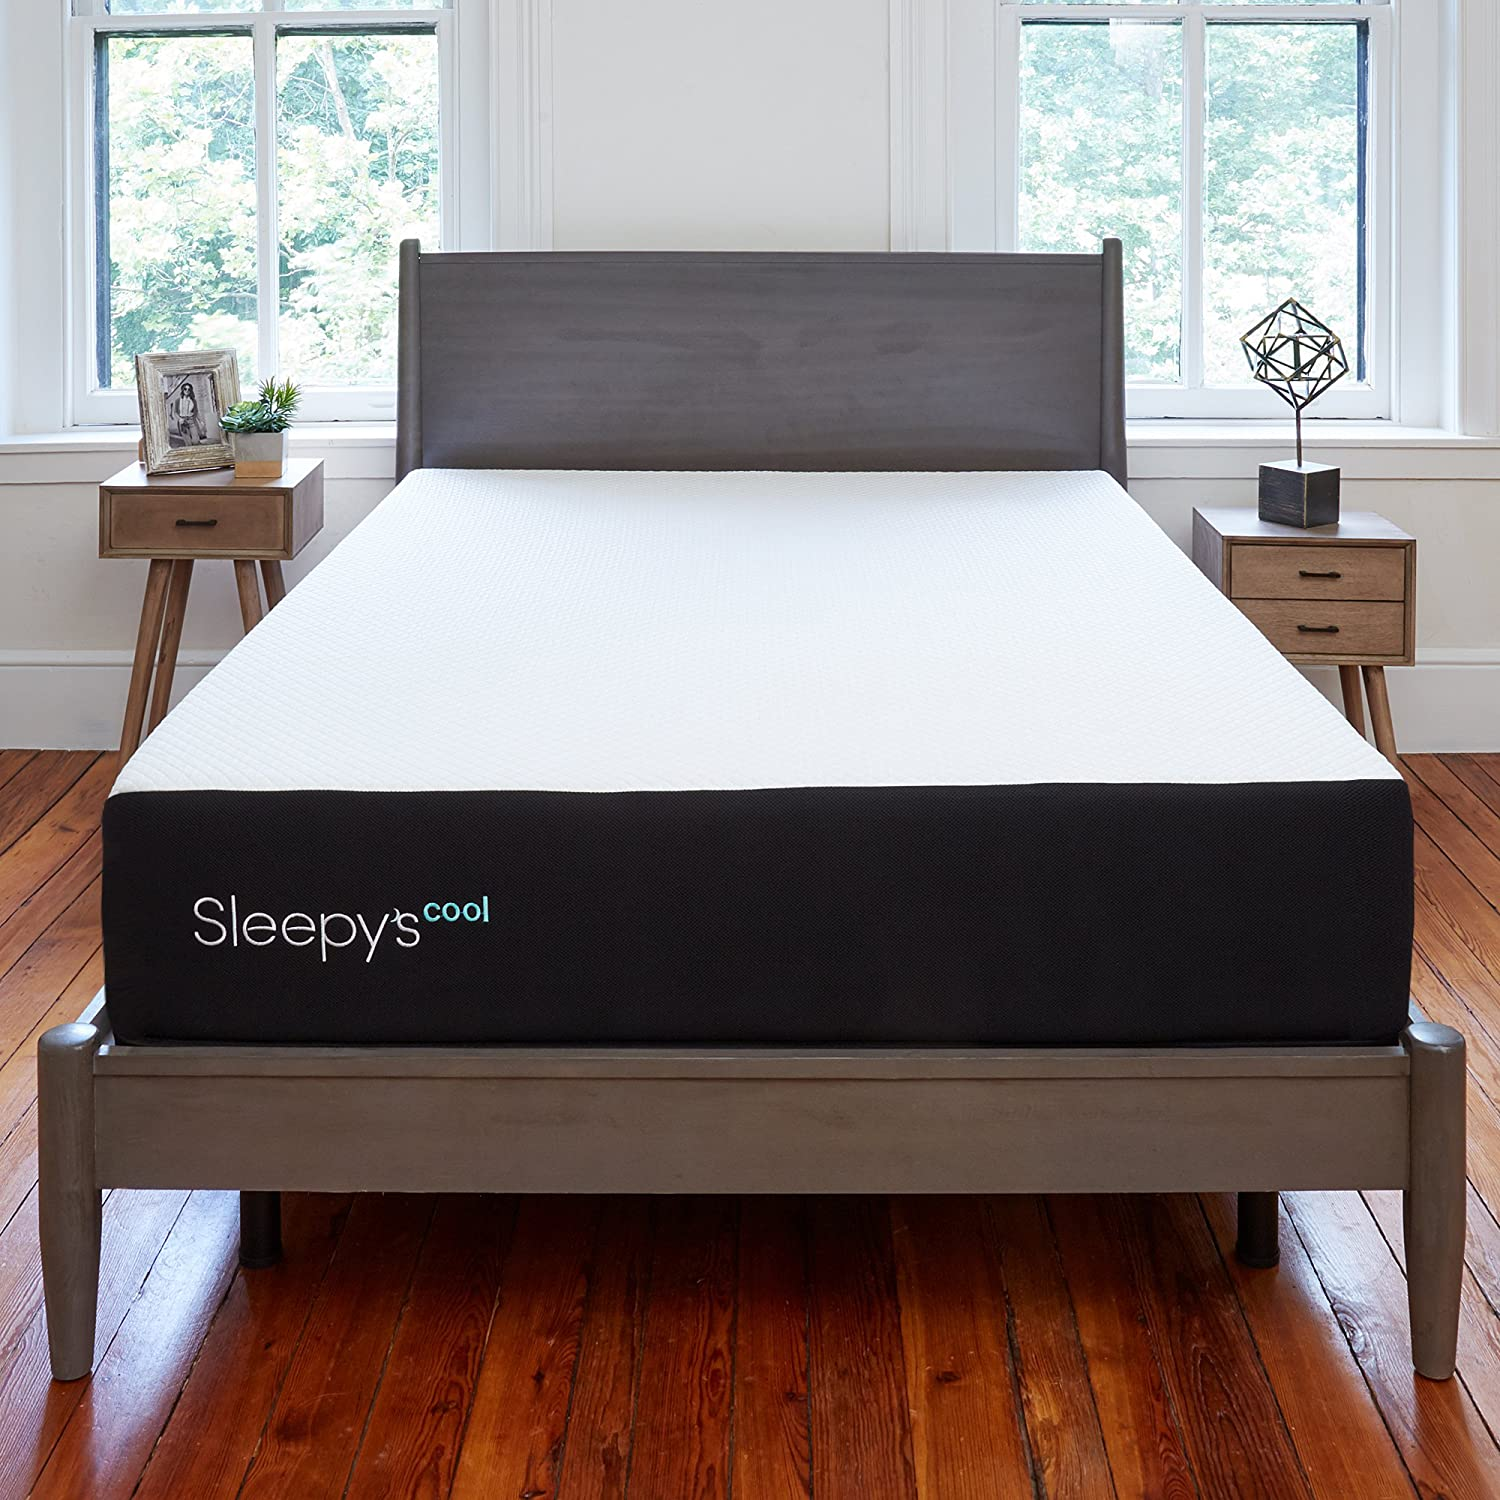 amazon com sleepy s cool plush mattress king size kitchen dining